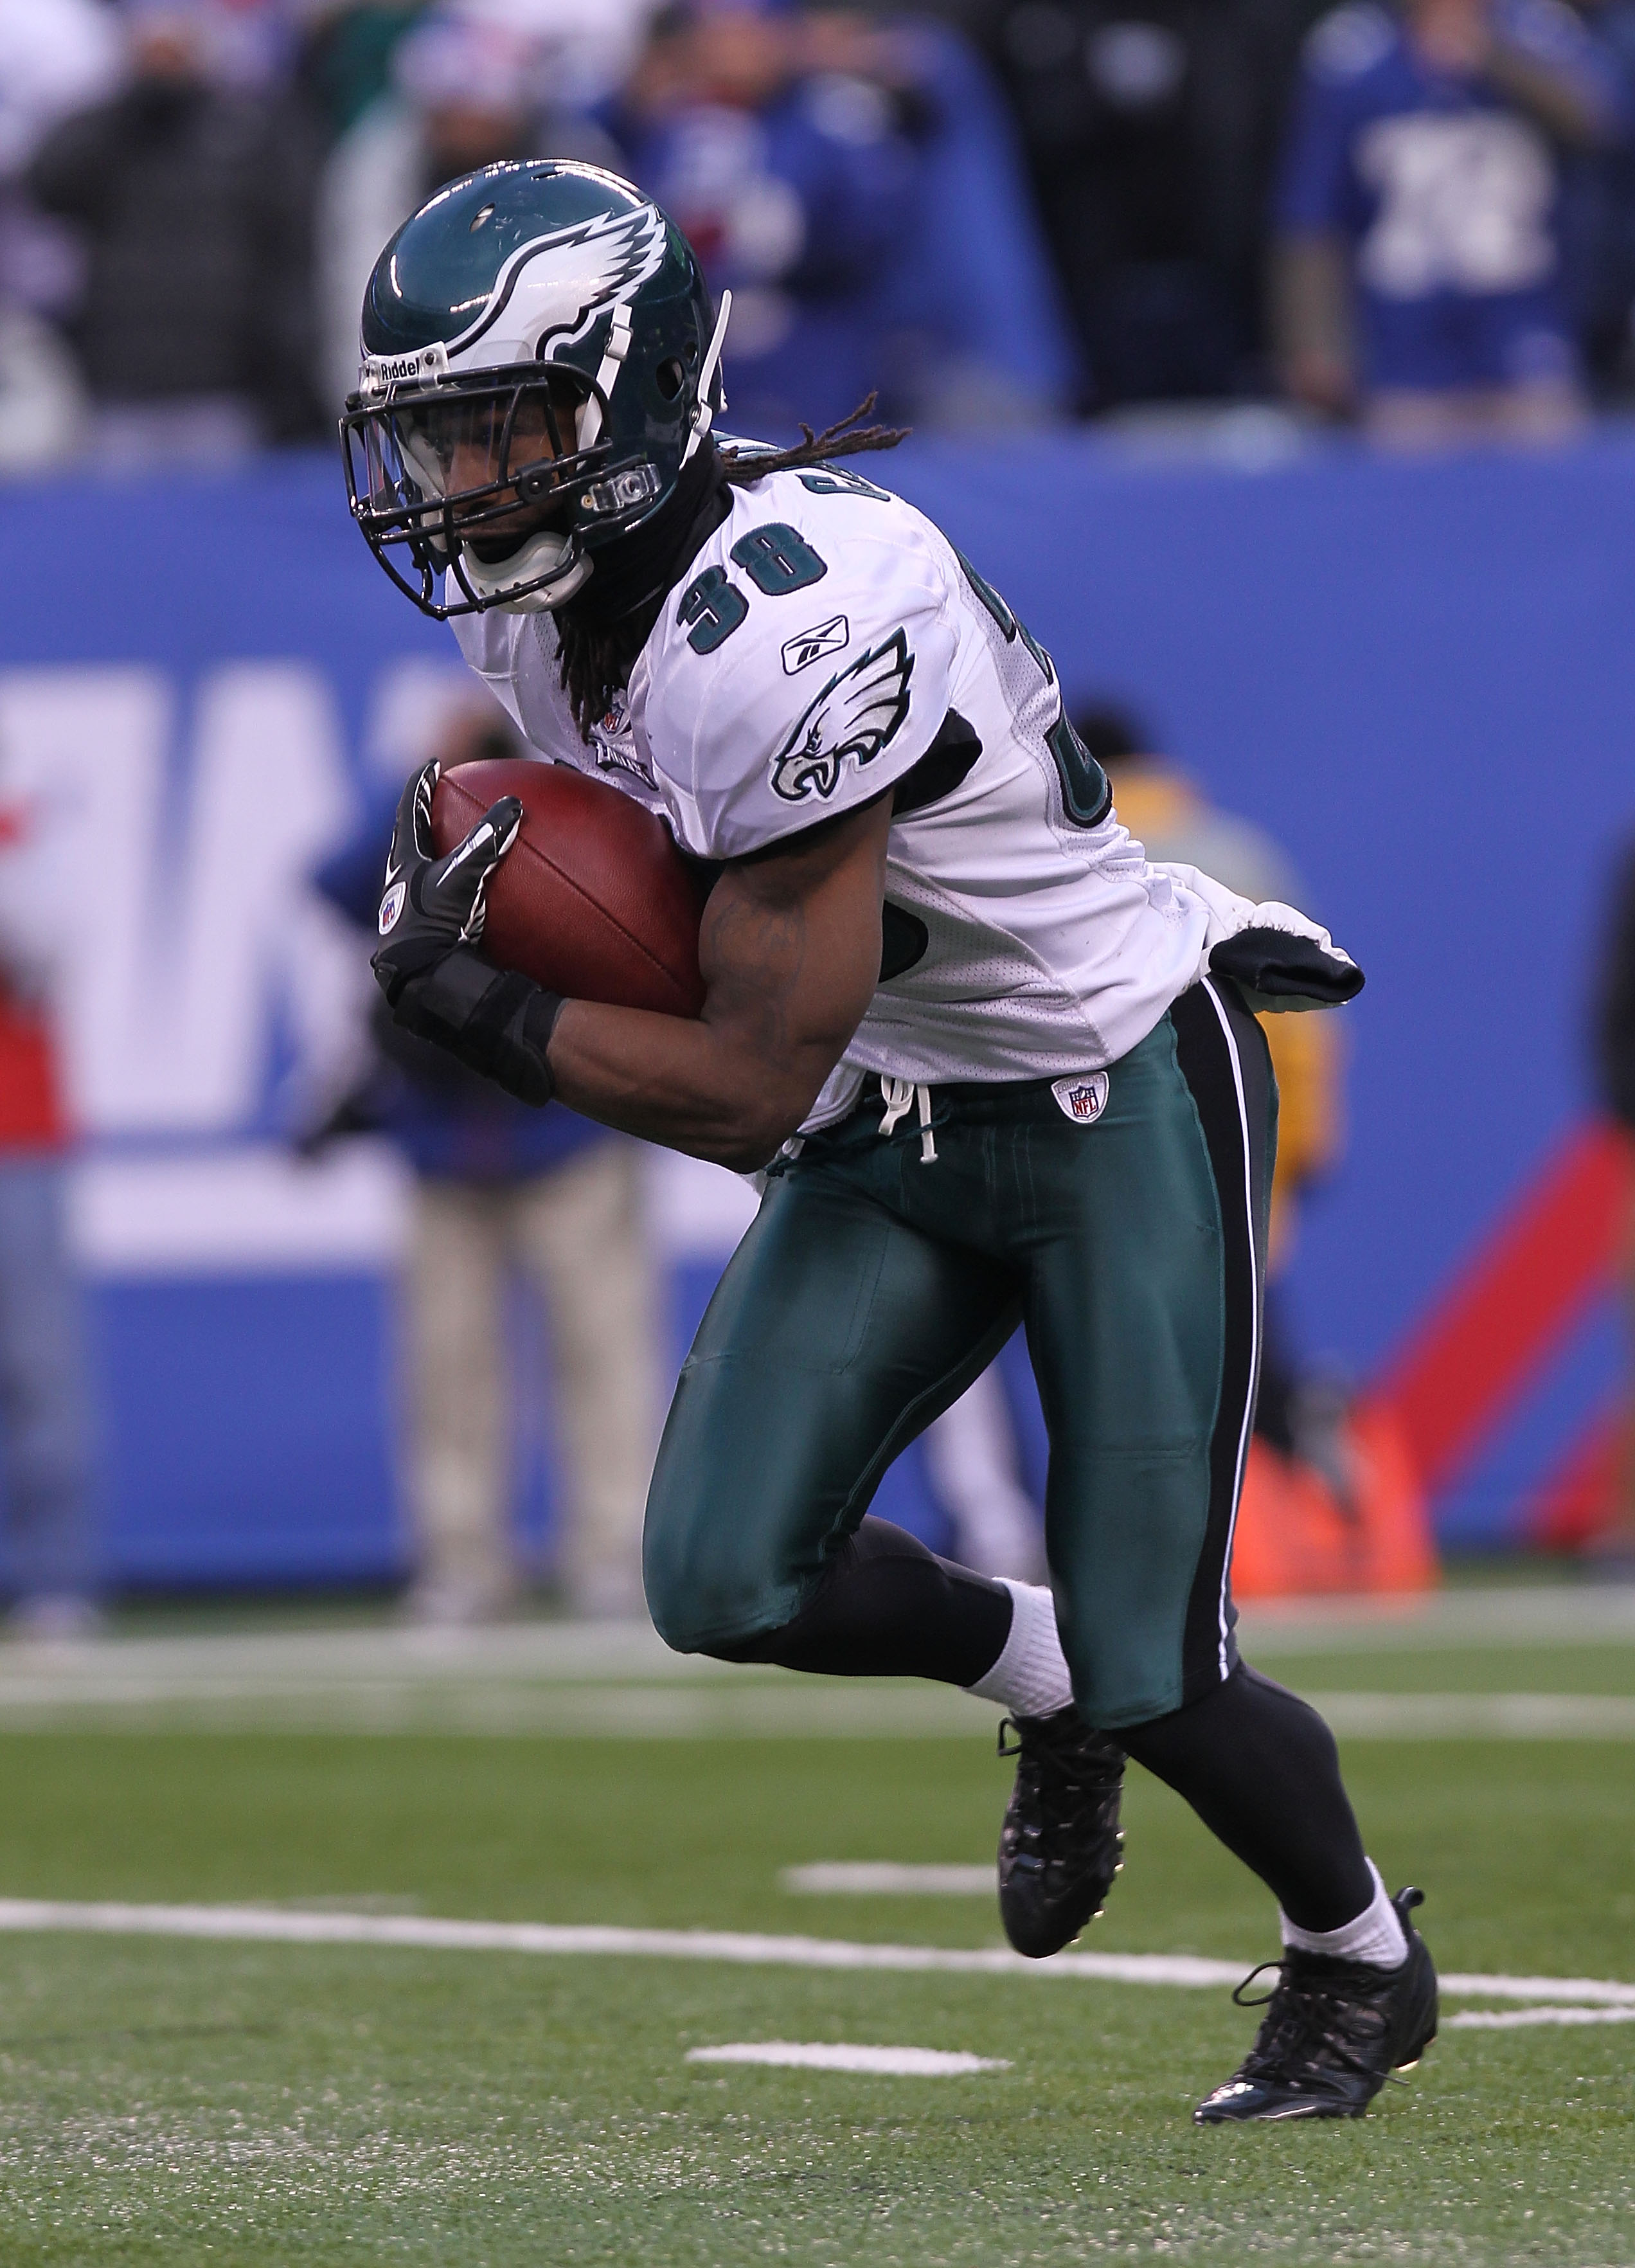 EAST RUTHERFORD, NJ - DECEMBER 19:  Jorrick Calvin #38 of the Philadelphia Eagles rushes against the New York Giants at New Meadowlands Stadium on December 19, 2010 in East Rutherford, New Jersey.  (Photo by Nick Laham/Getty Images)